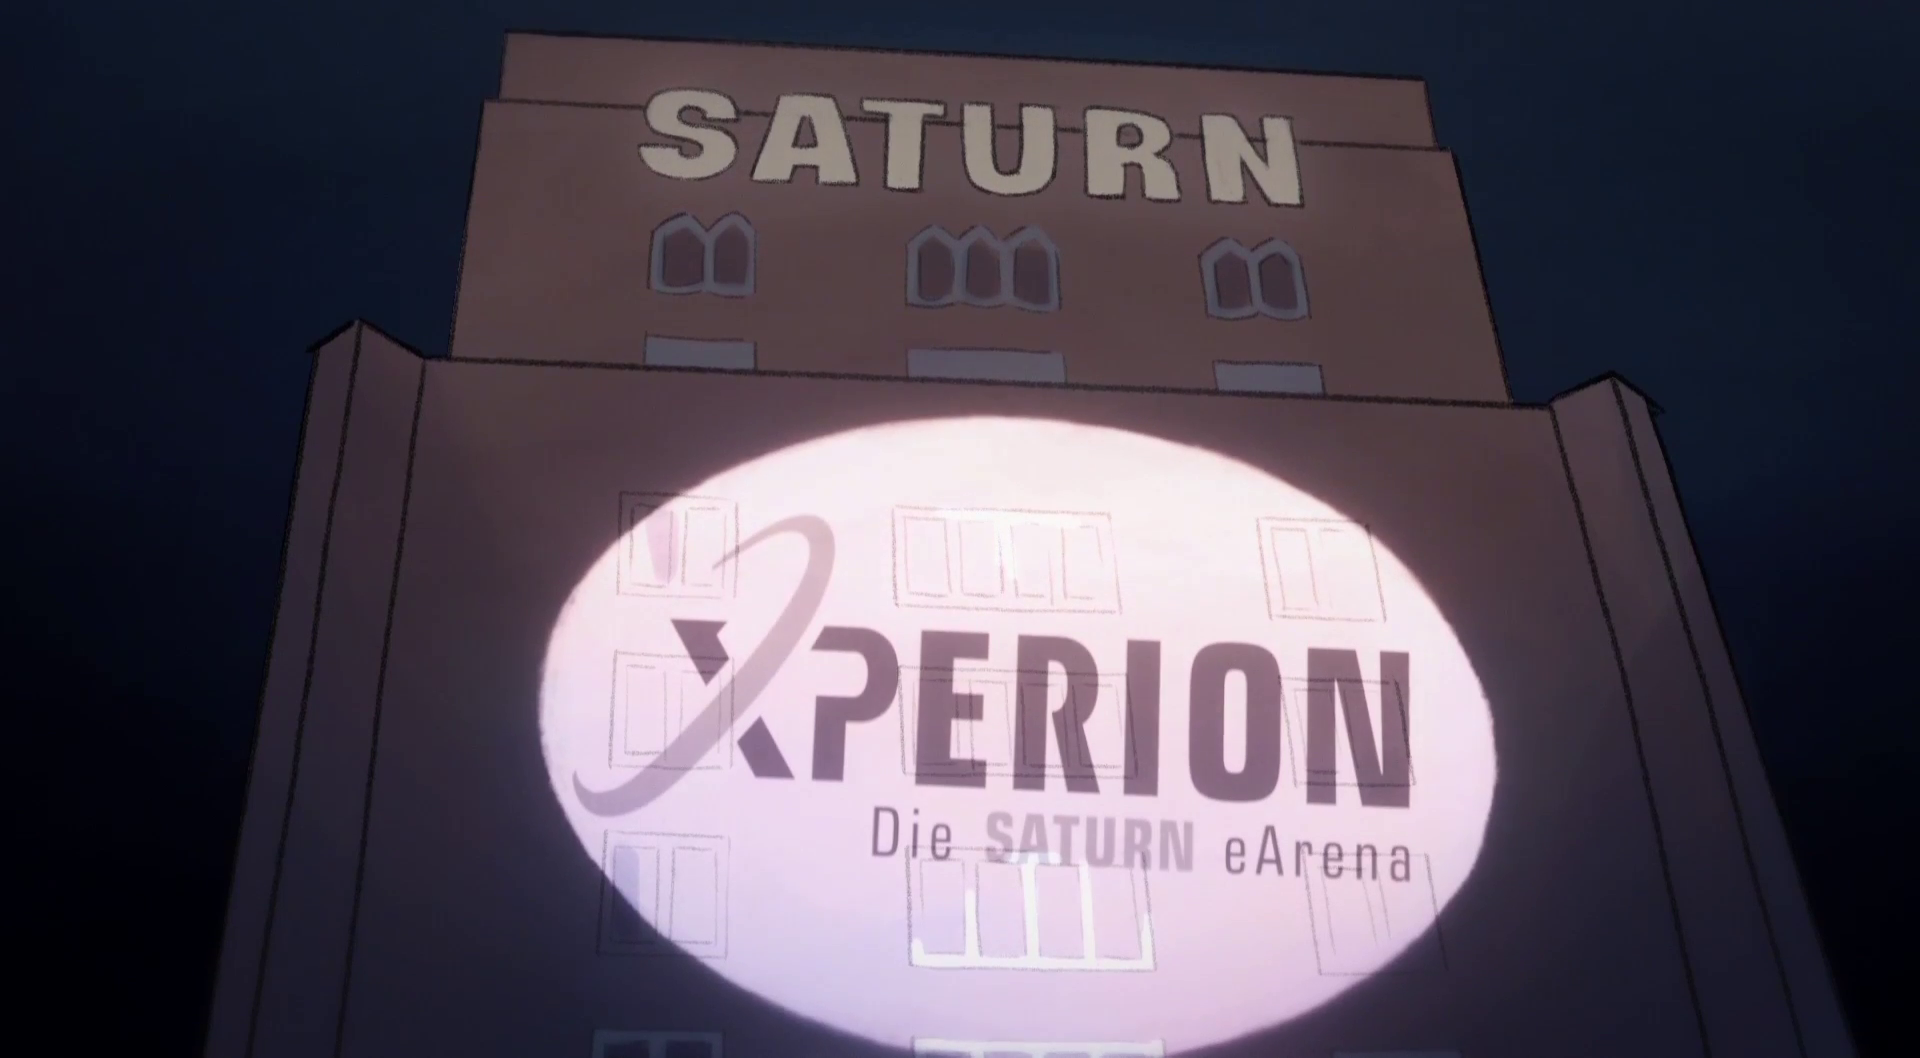 Saturn Xperion